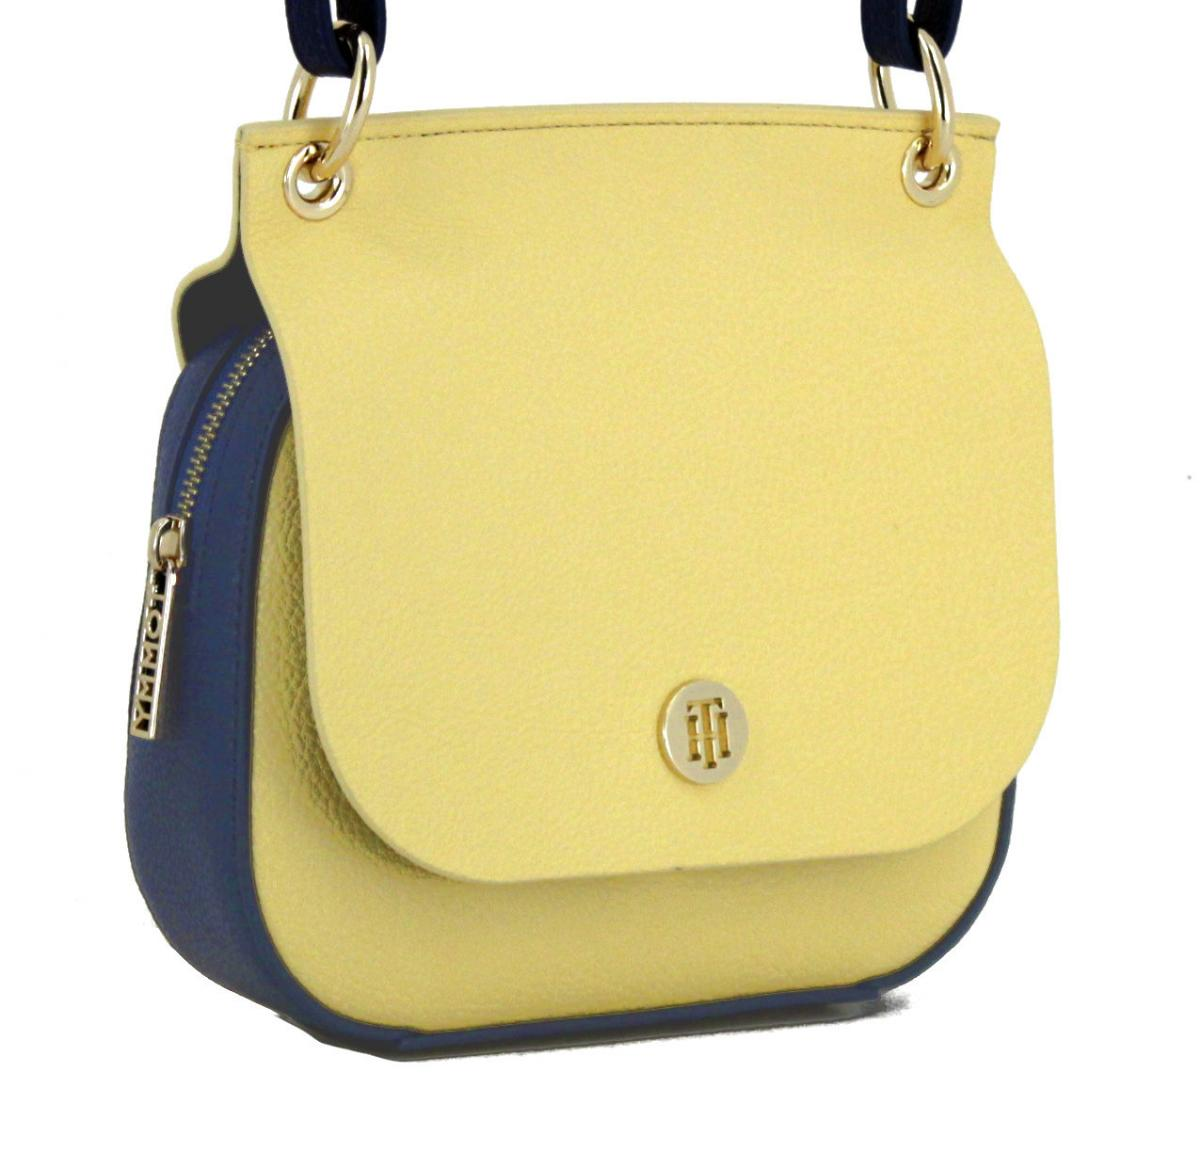 5212d62229c61 Tommy Hilfiger Core Flap Crossover Schultertasche gelb blau - Bags ...